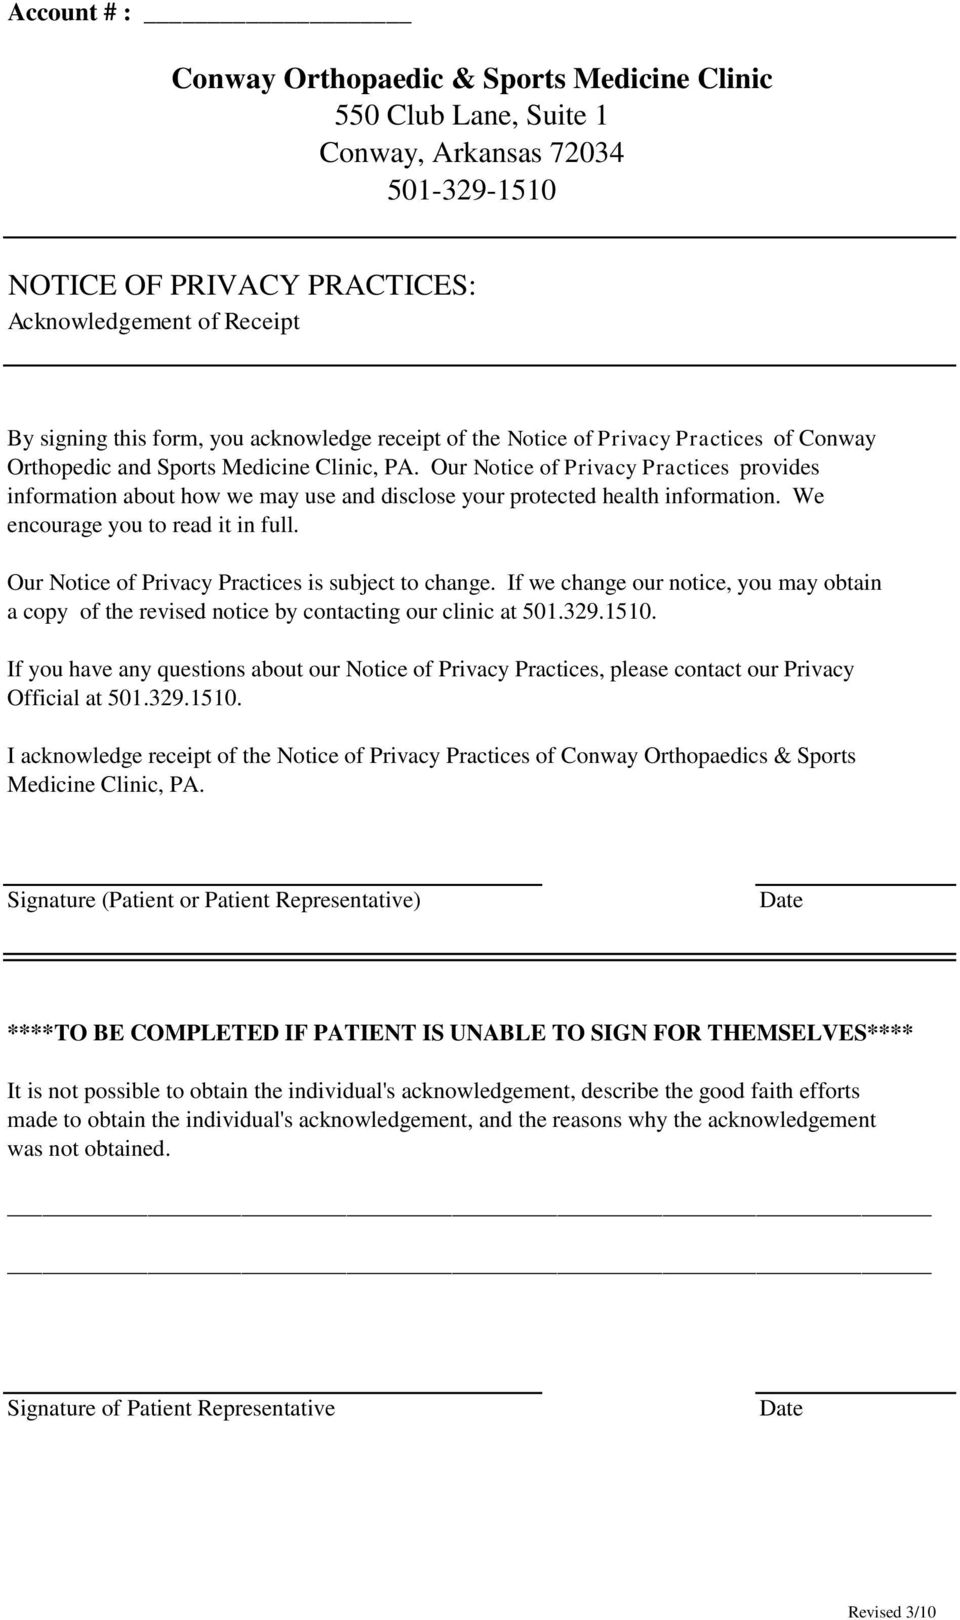 Our Notice of Privacy Practices provides information about how we may use and disclose your protected health information. We encourage you to read it in full.